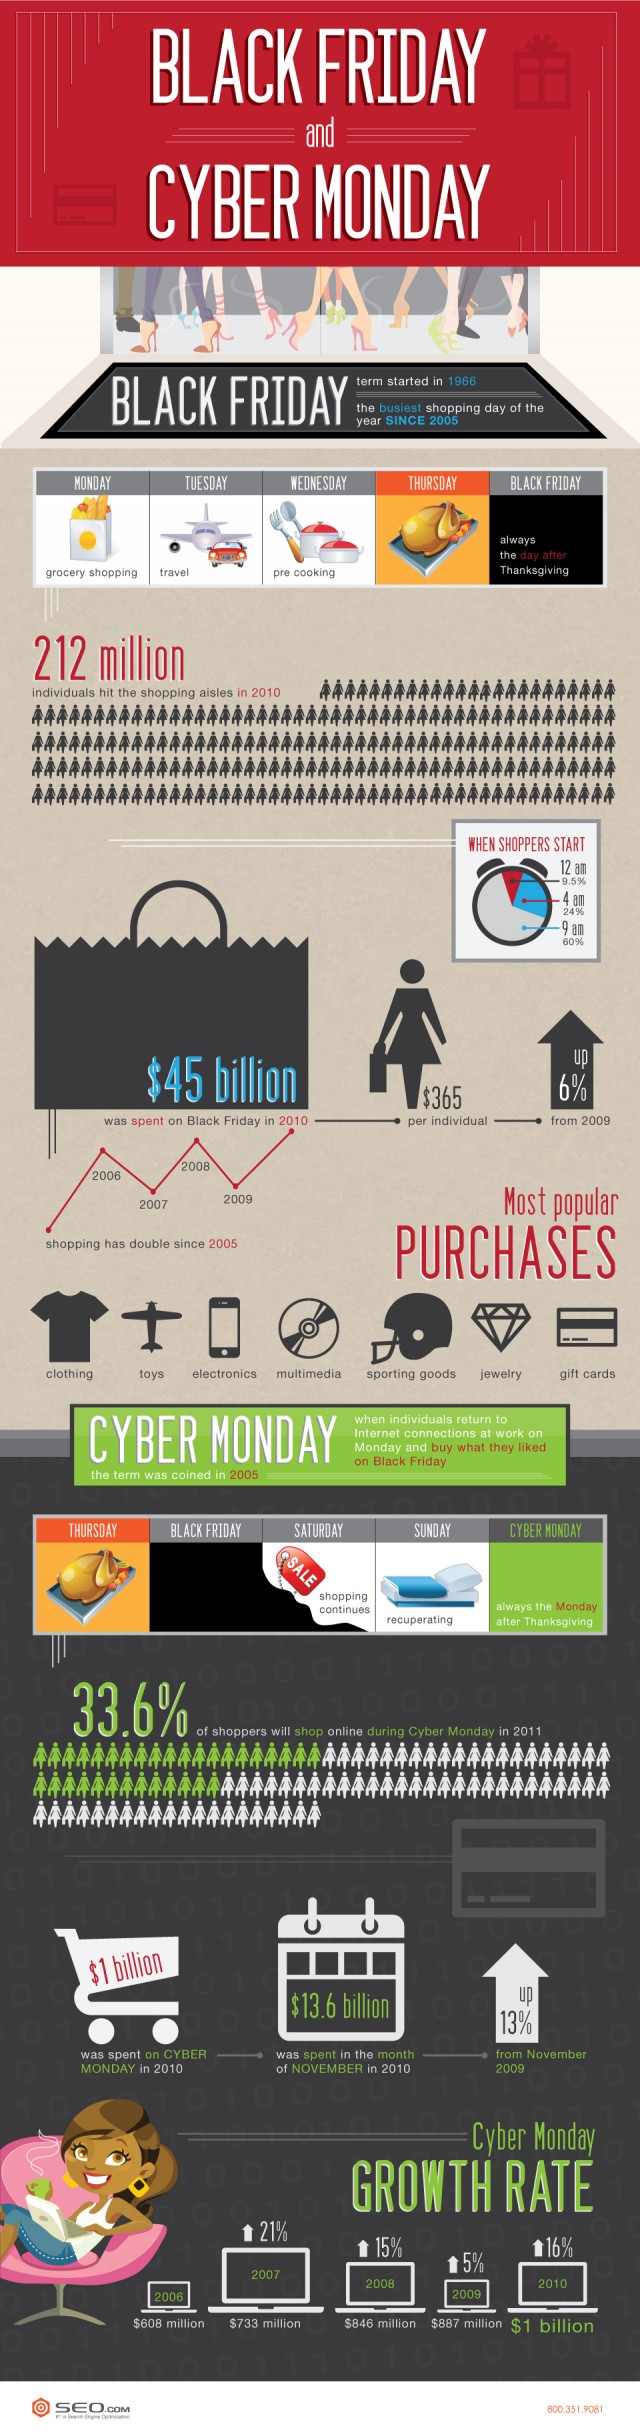 Black Friday and Cyber Monday Infographic